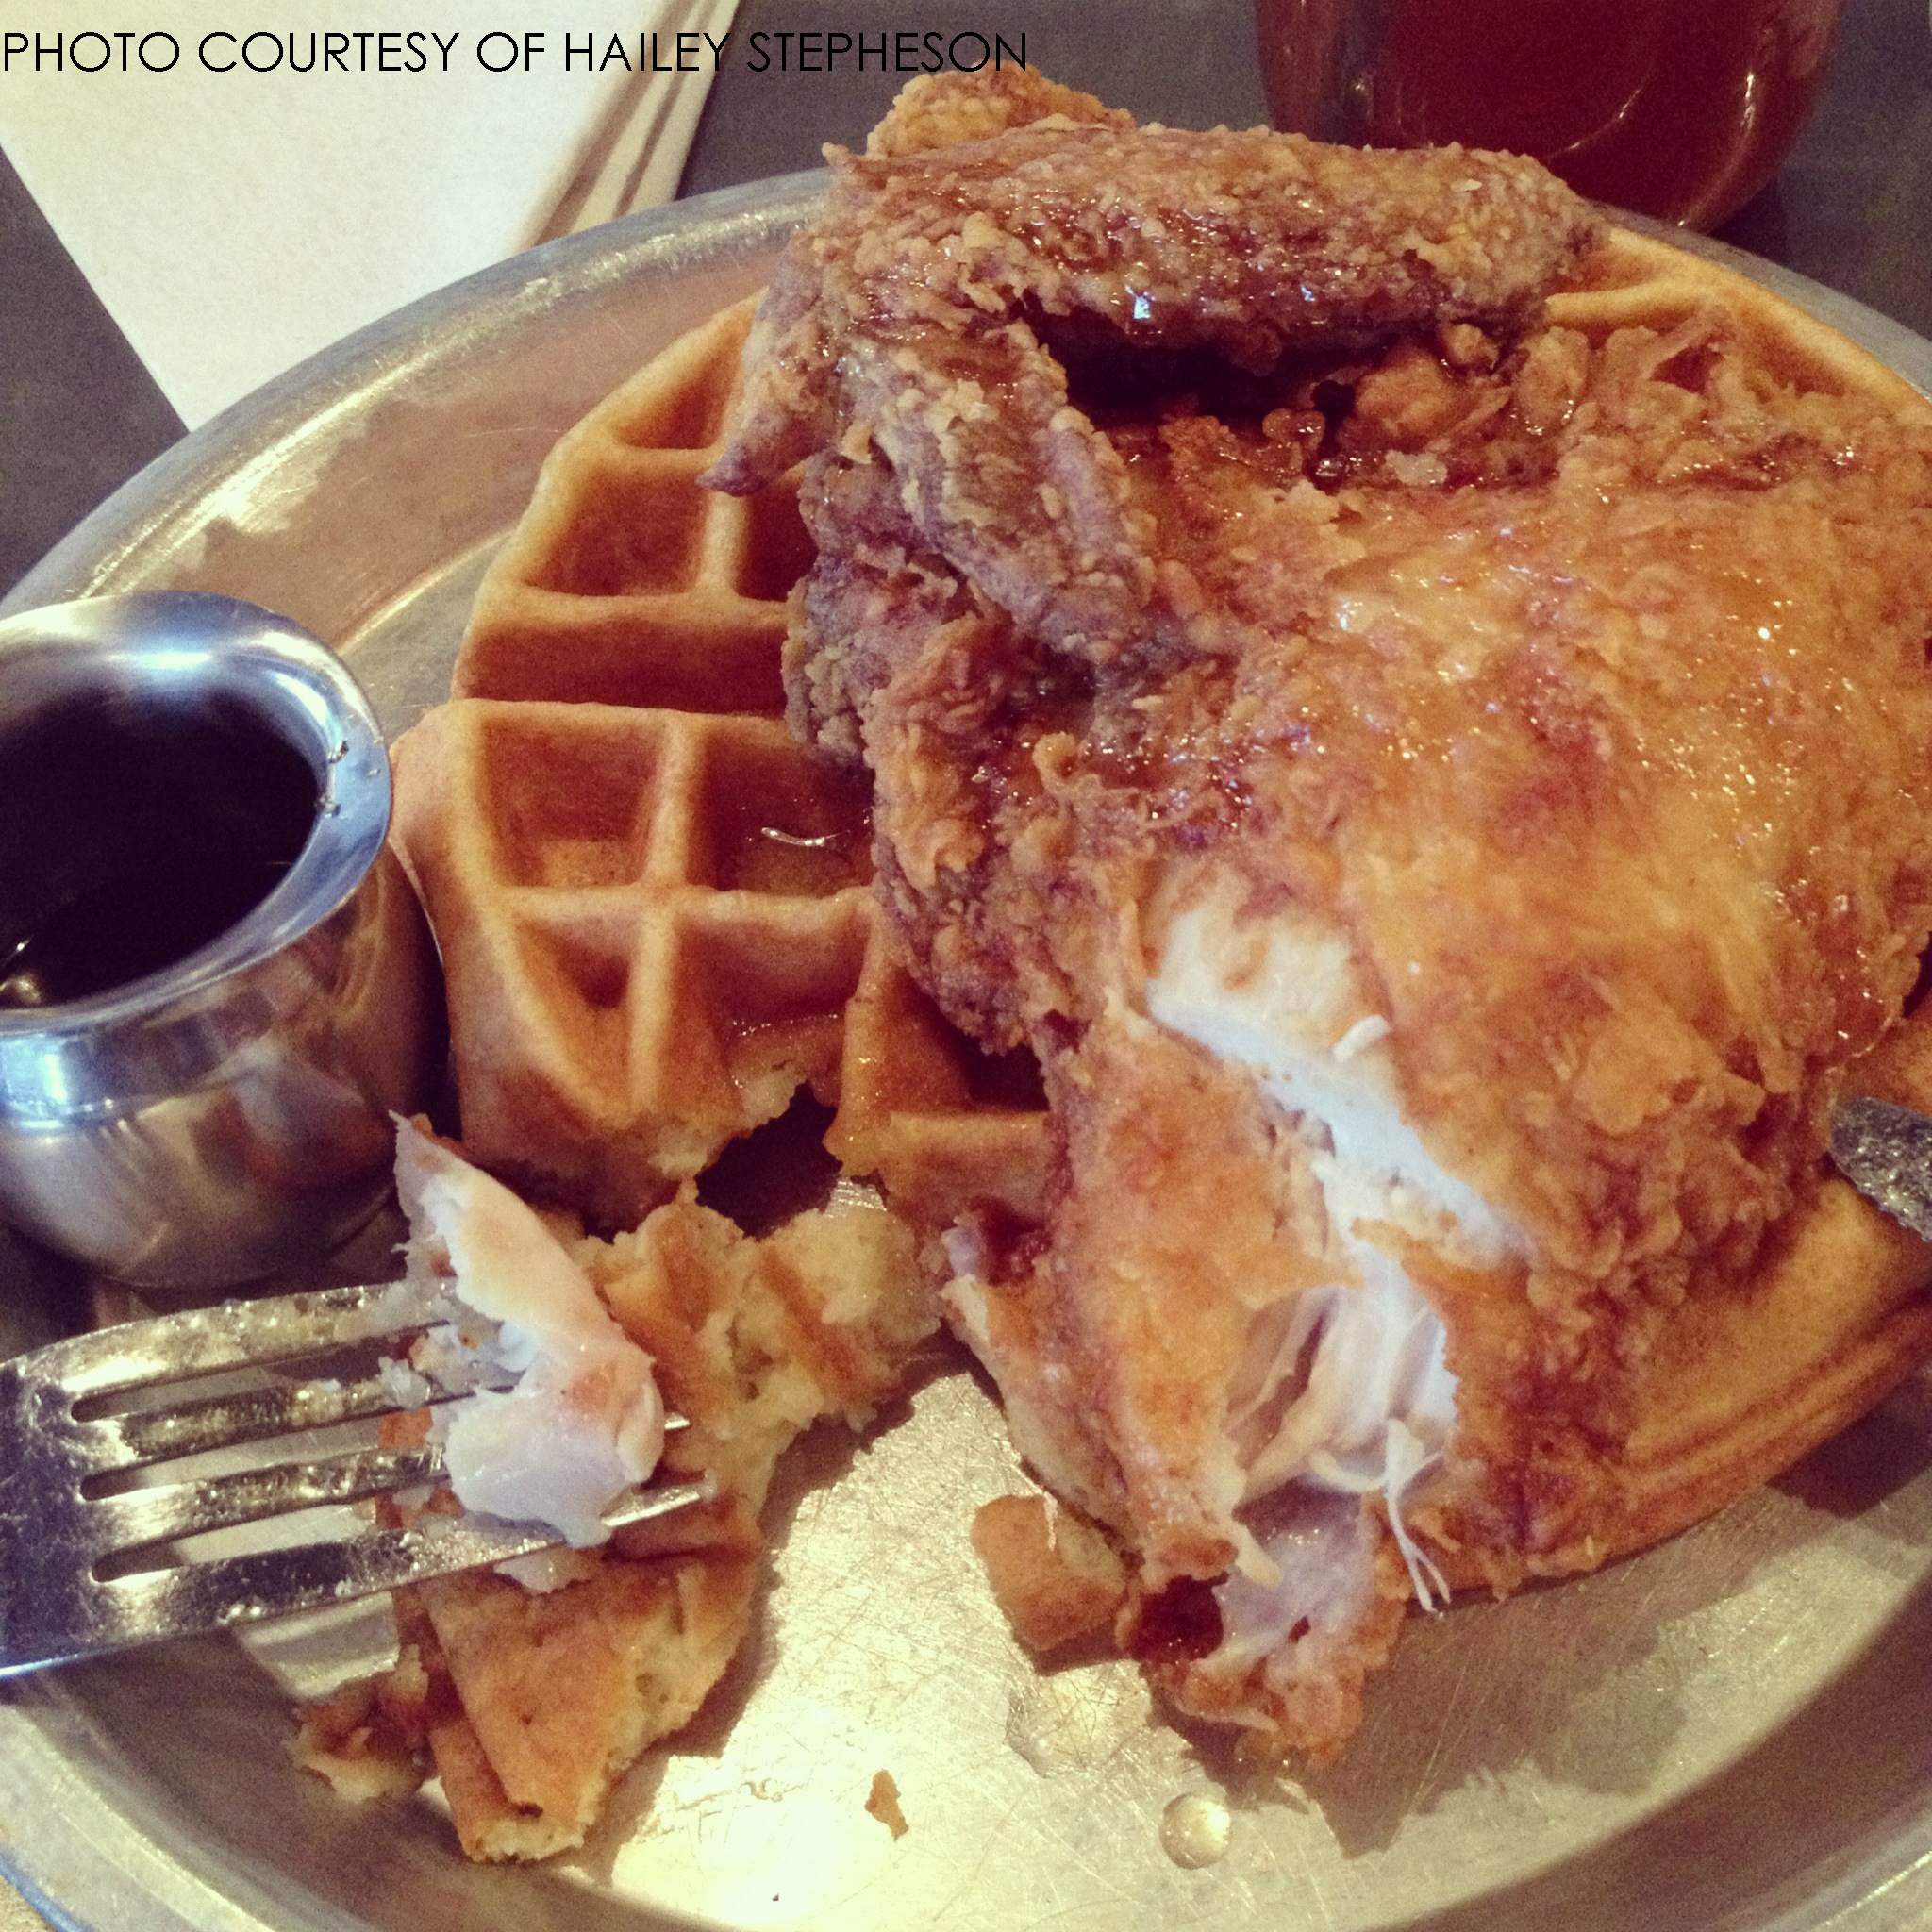 Just one of many delicious meals that can be found at Beasley's Chicken and Honey. The restaurant is not only famous for its fried chicken and waffles, their desserts are well sought after, too.